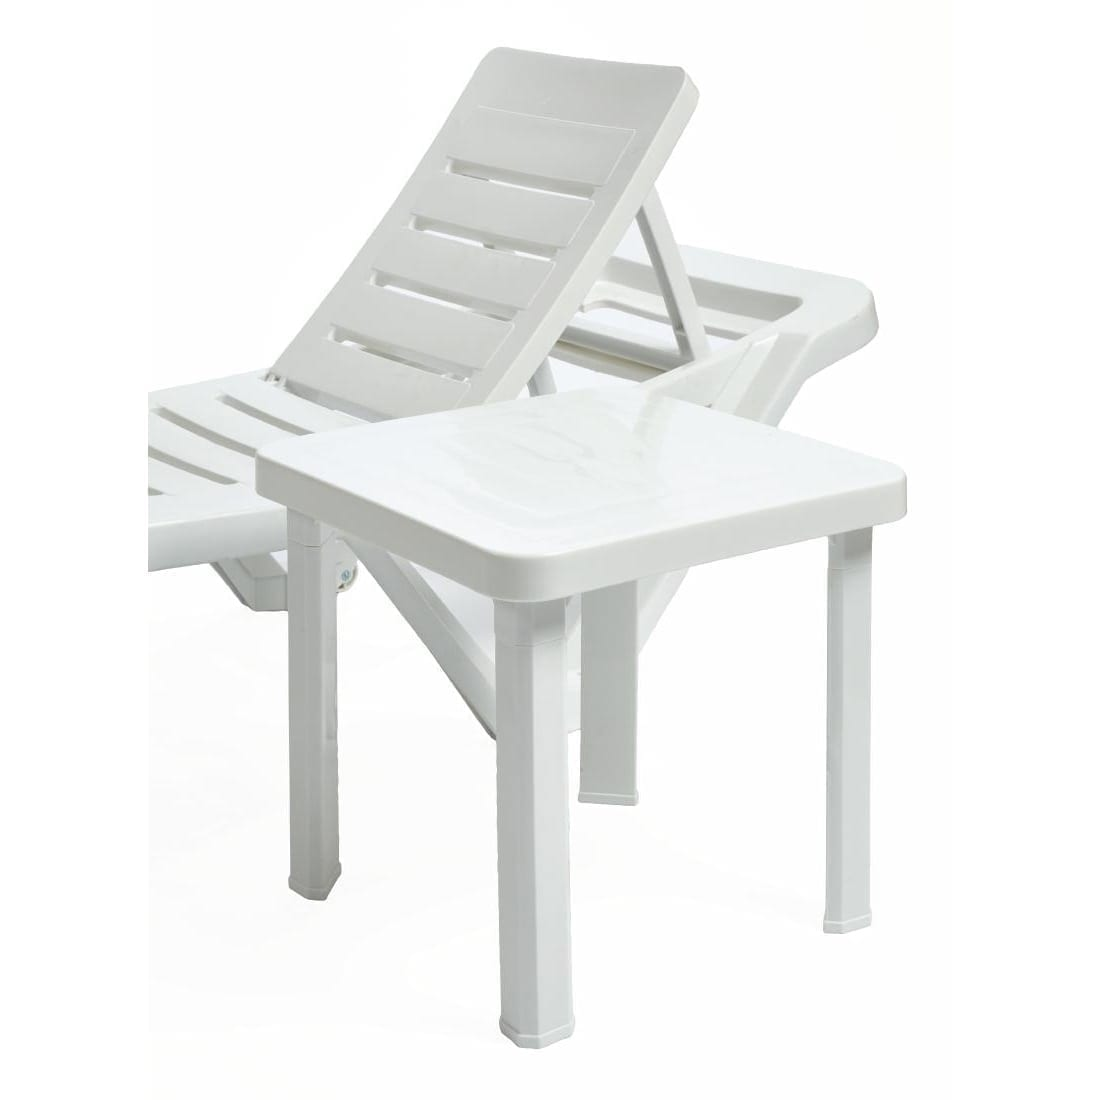 White Plastic Sun Loungers Resol Sun Lounger Side Table Polypropylene Pack 6